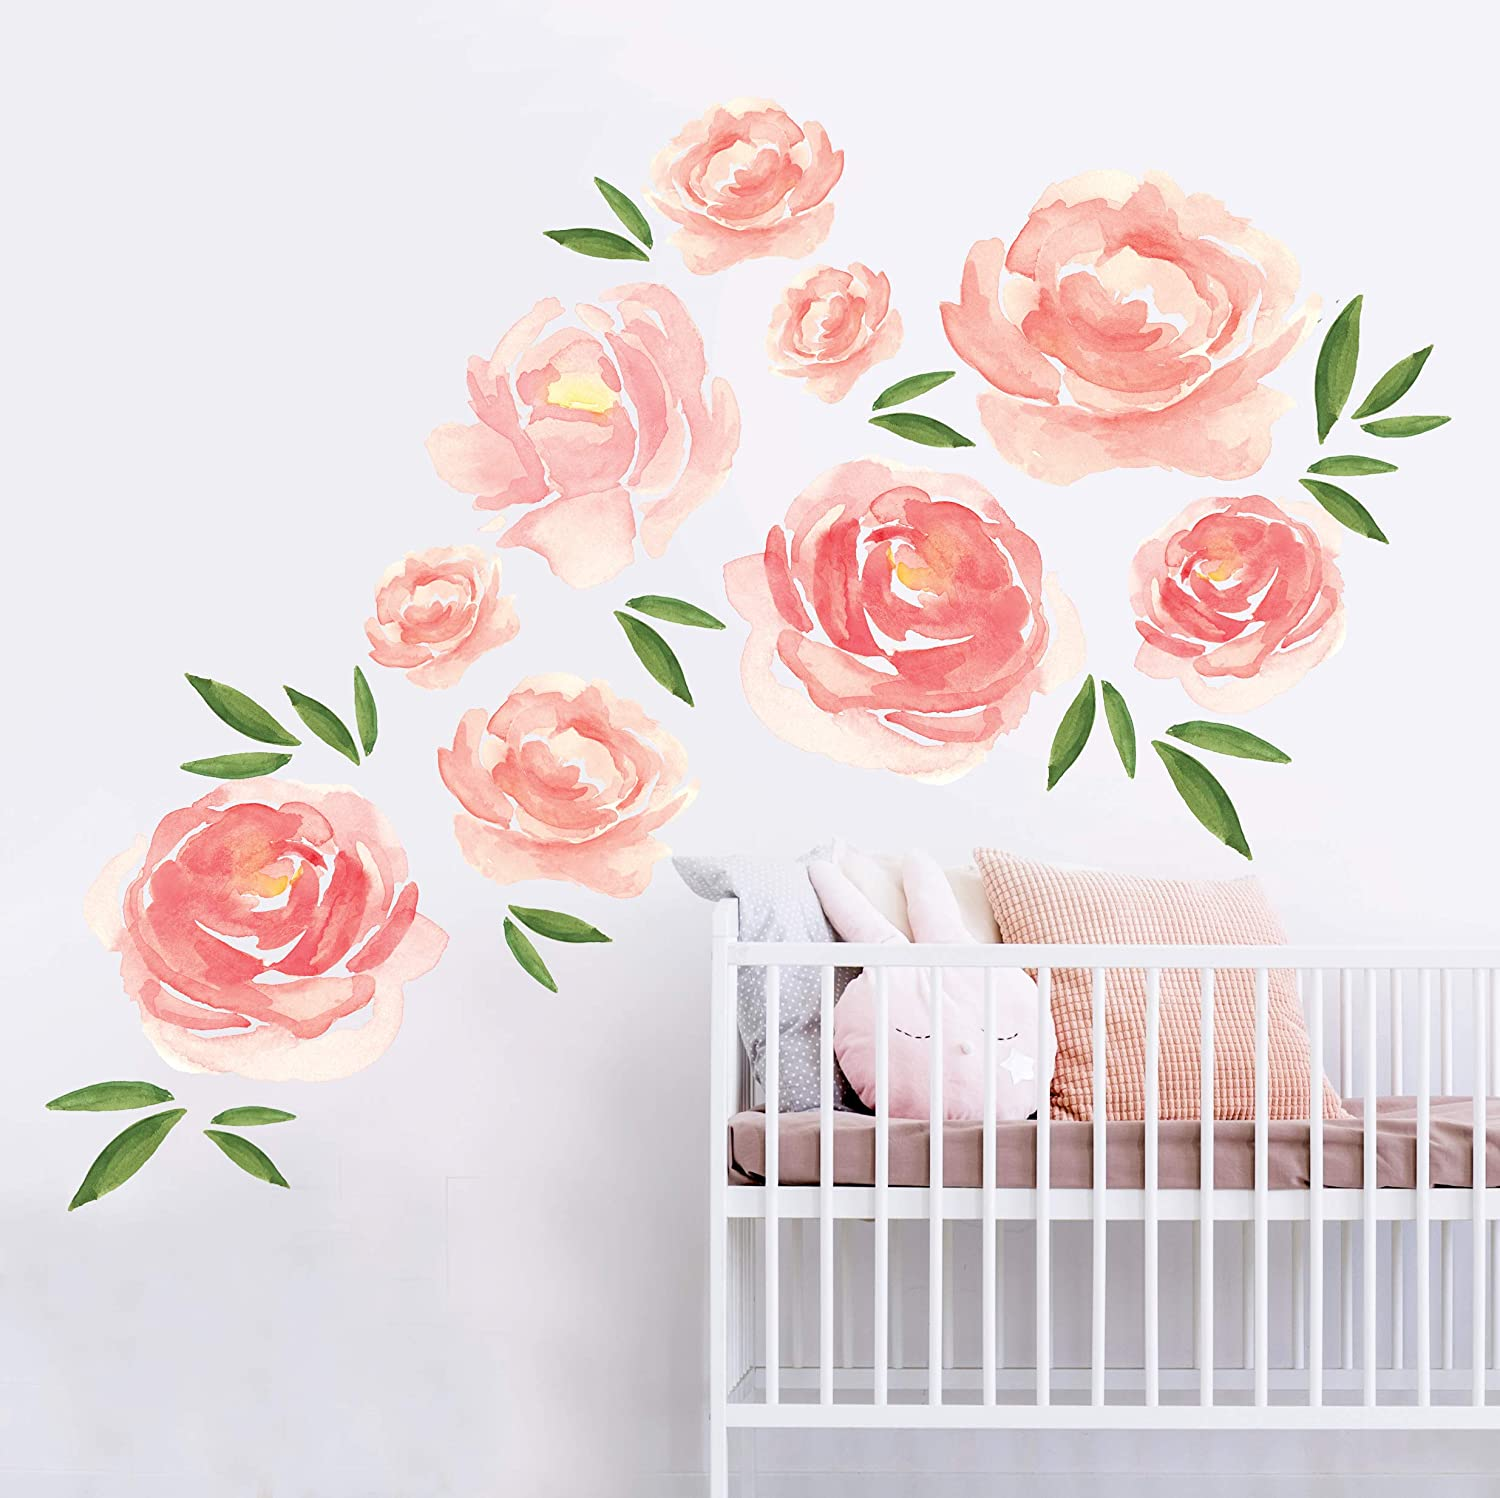 Better than paint permanent wall decor applies like decals no vinyl stickers 11 pink peony flowers for walls nursery decor and diy room decorations